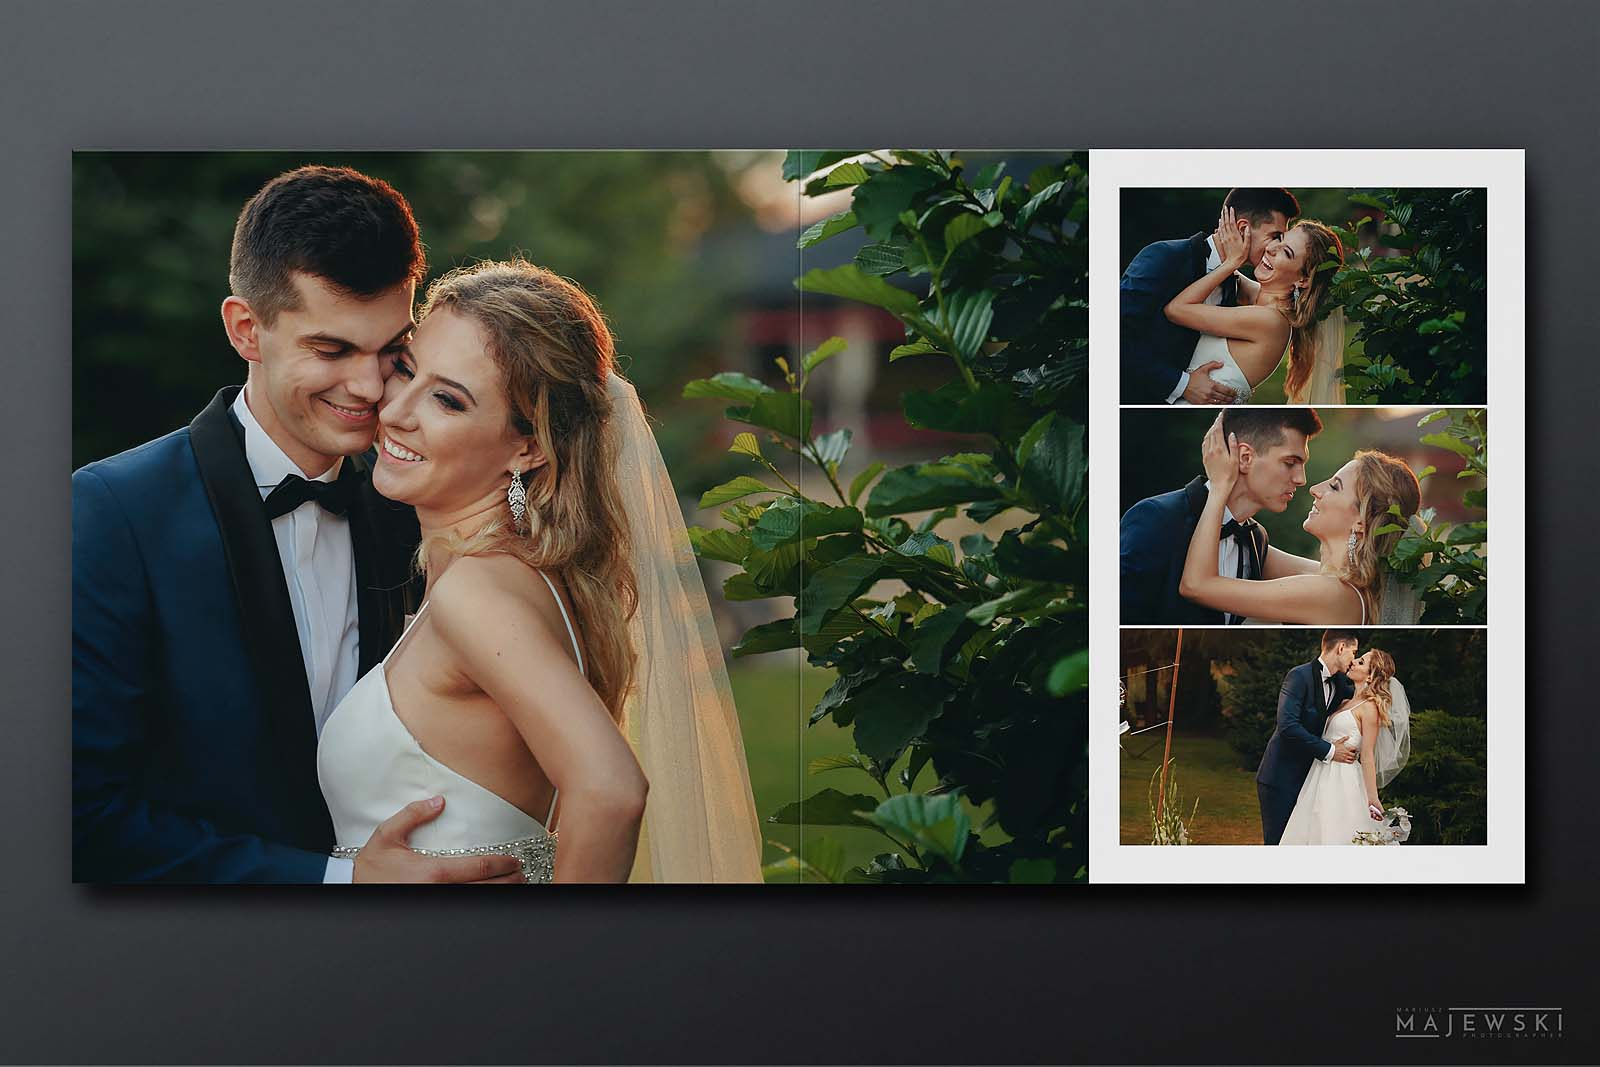 wedding-photo-album-mariusz-majewski-16071333